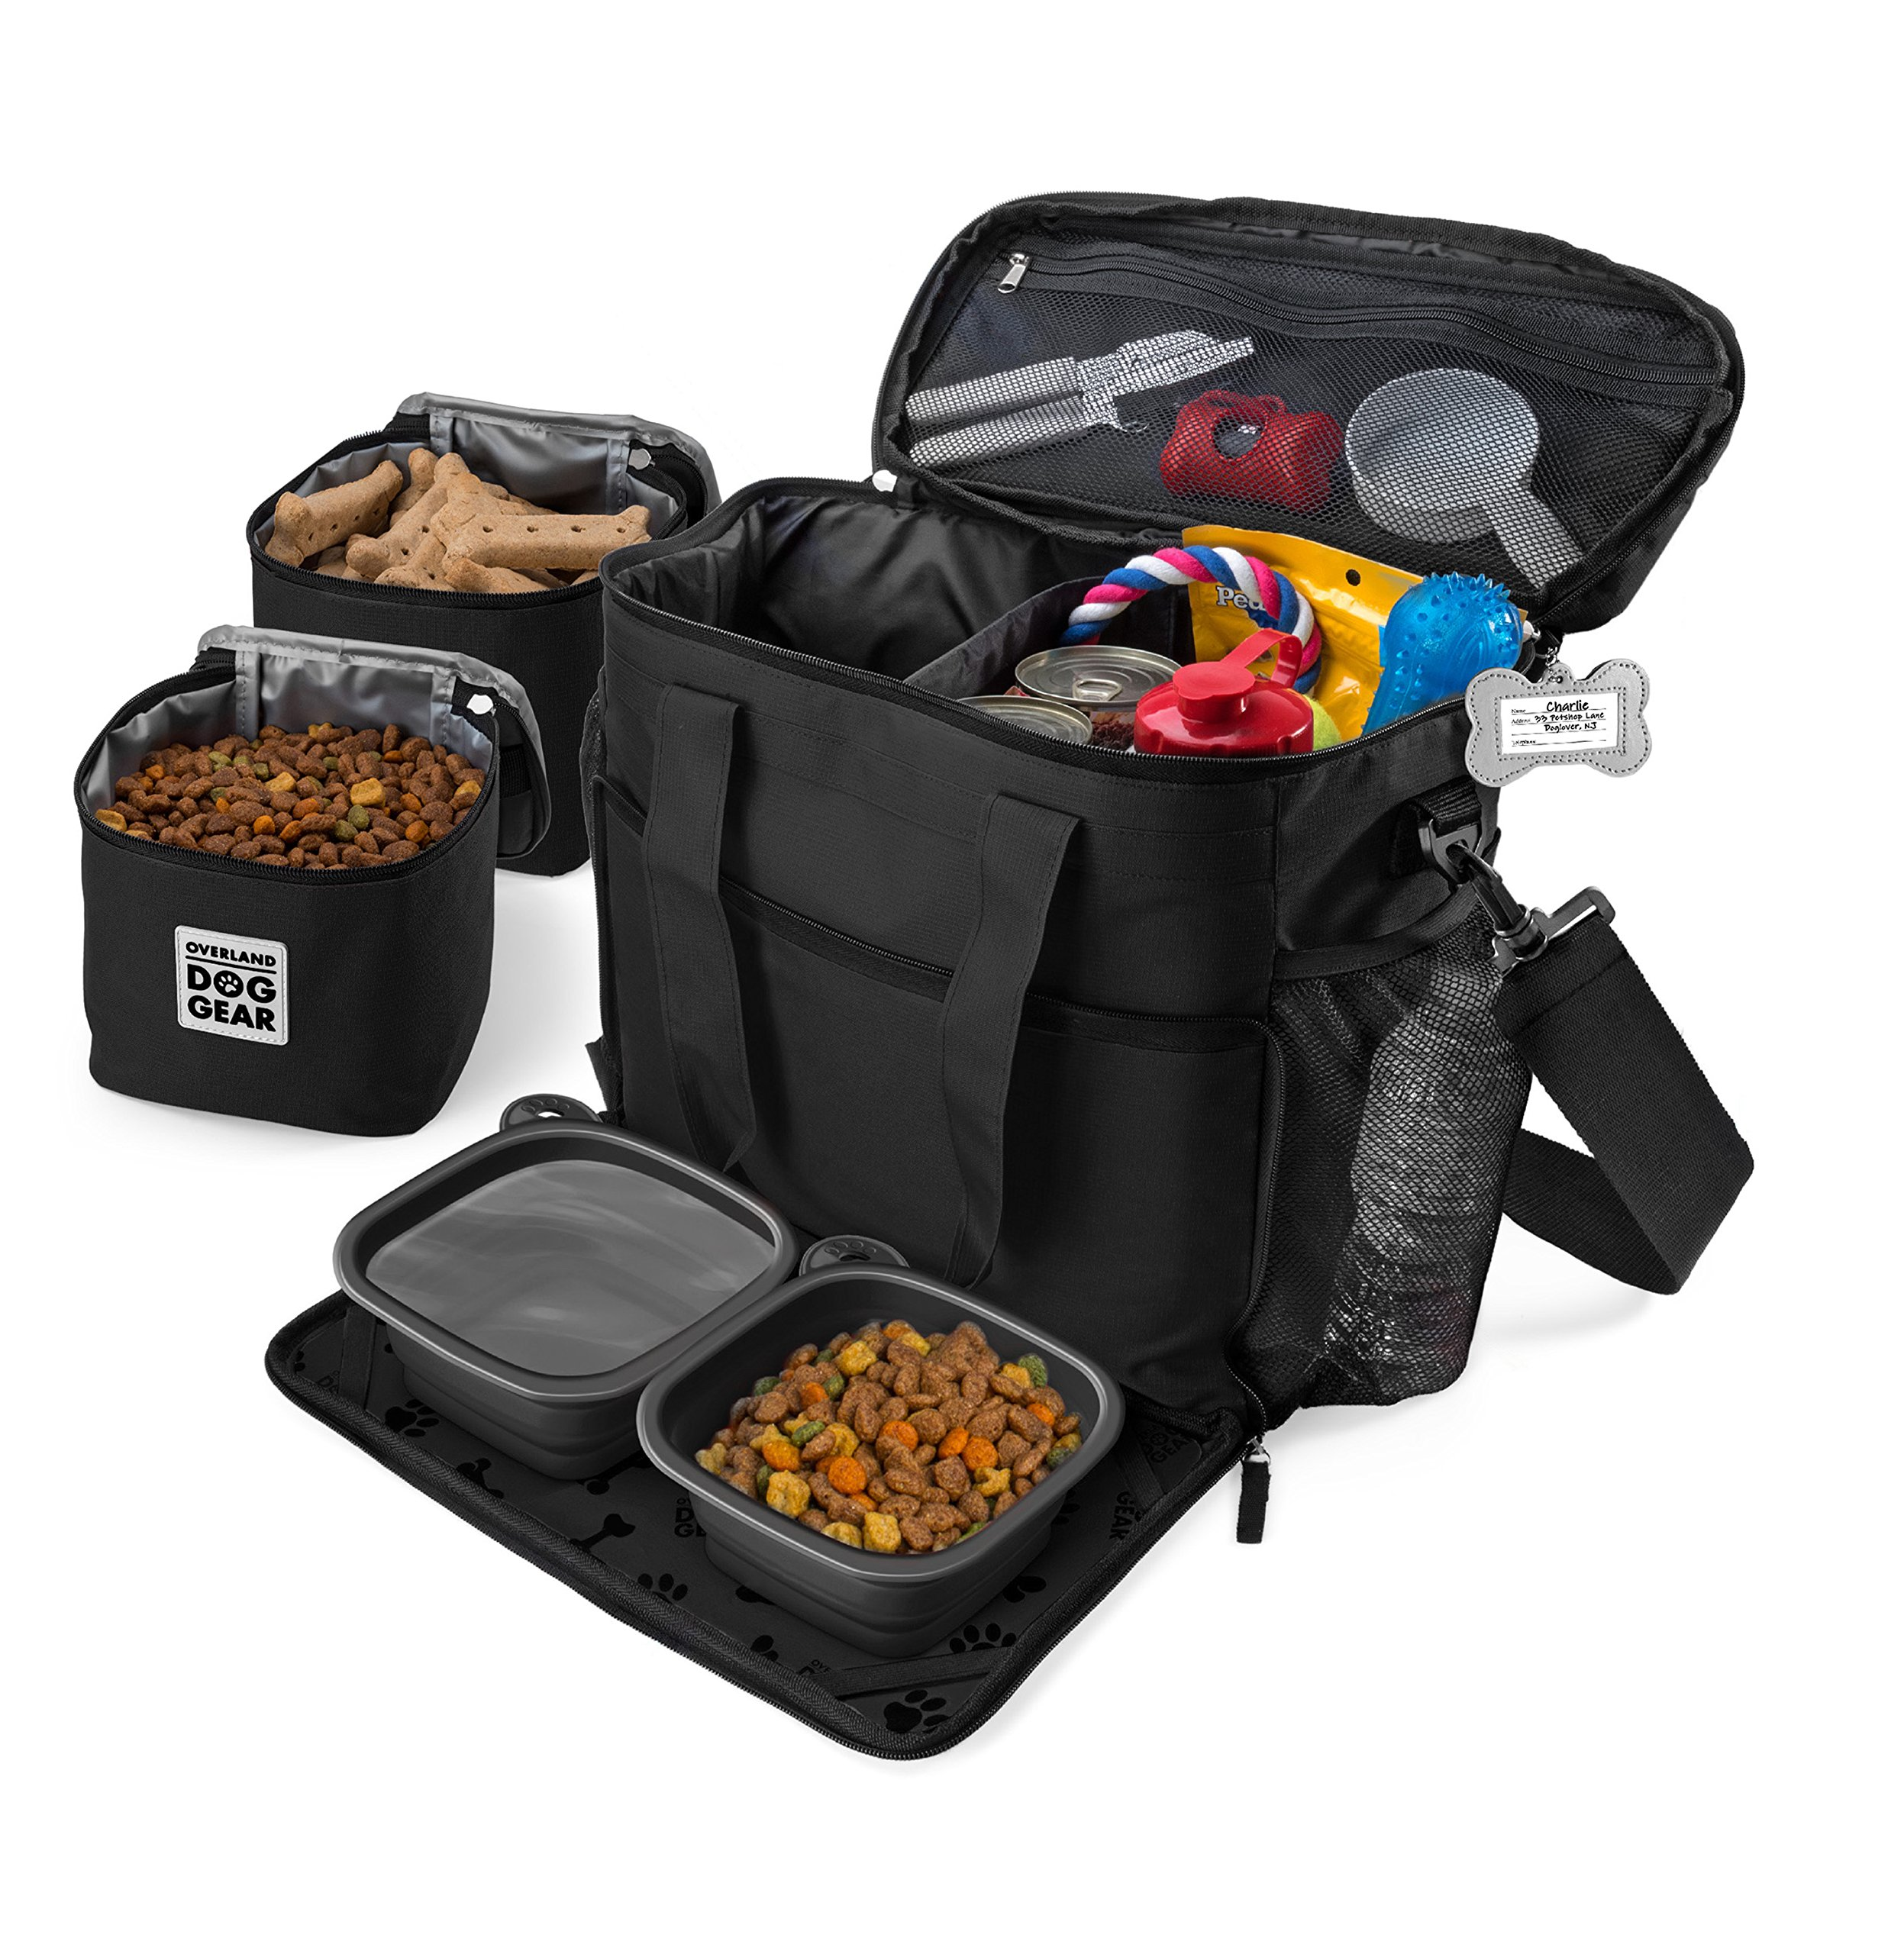 Dog Travel Bag - Week Away Tote for Med and Large Dogs - Includes Bag, 2 Lined Food Carriers, Placemat, and 2 Collapsible Bowls (Black) by Overland Dog Gear